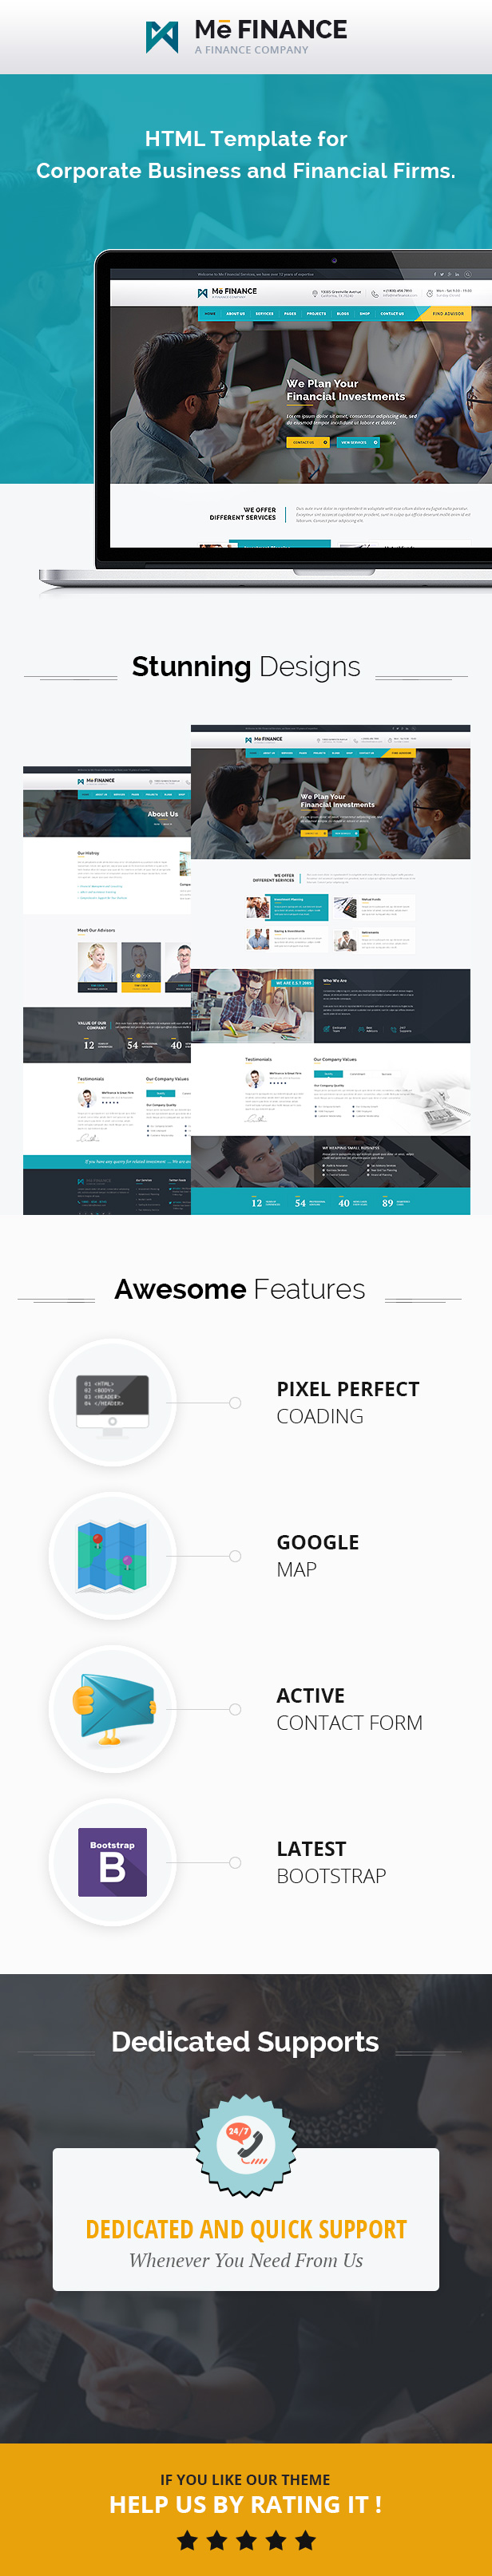 Me Finance - Business and Finance HTML Template - 2